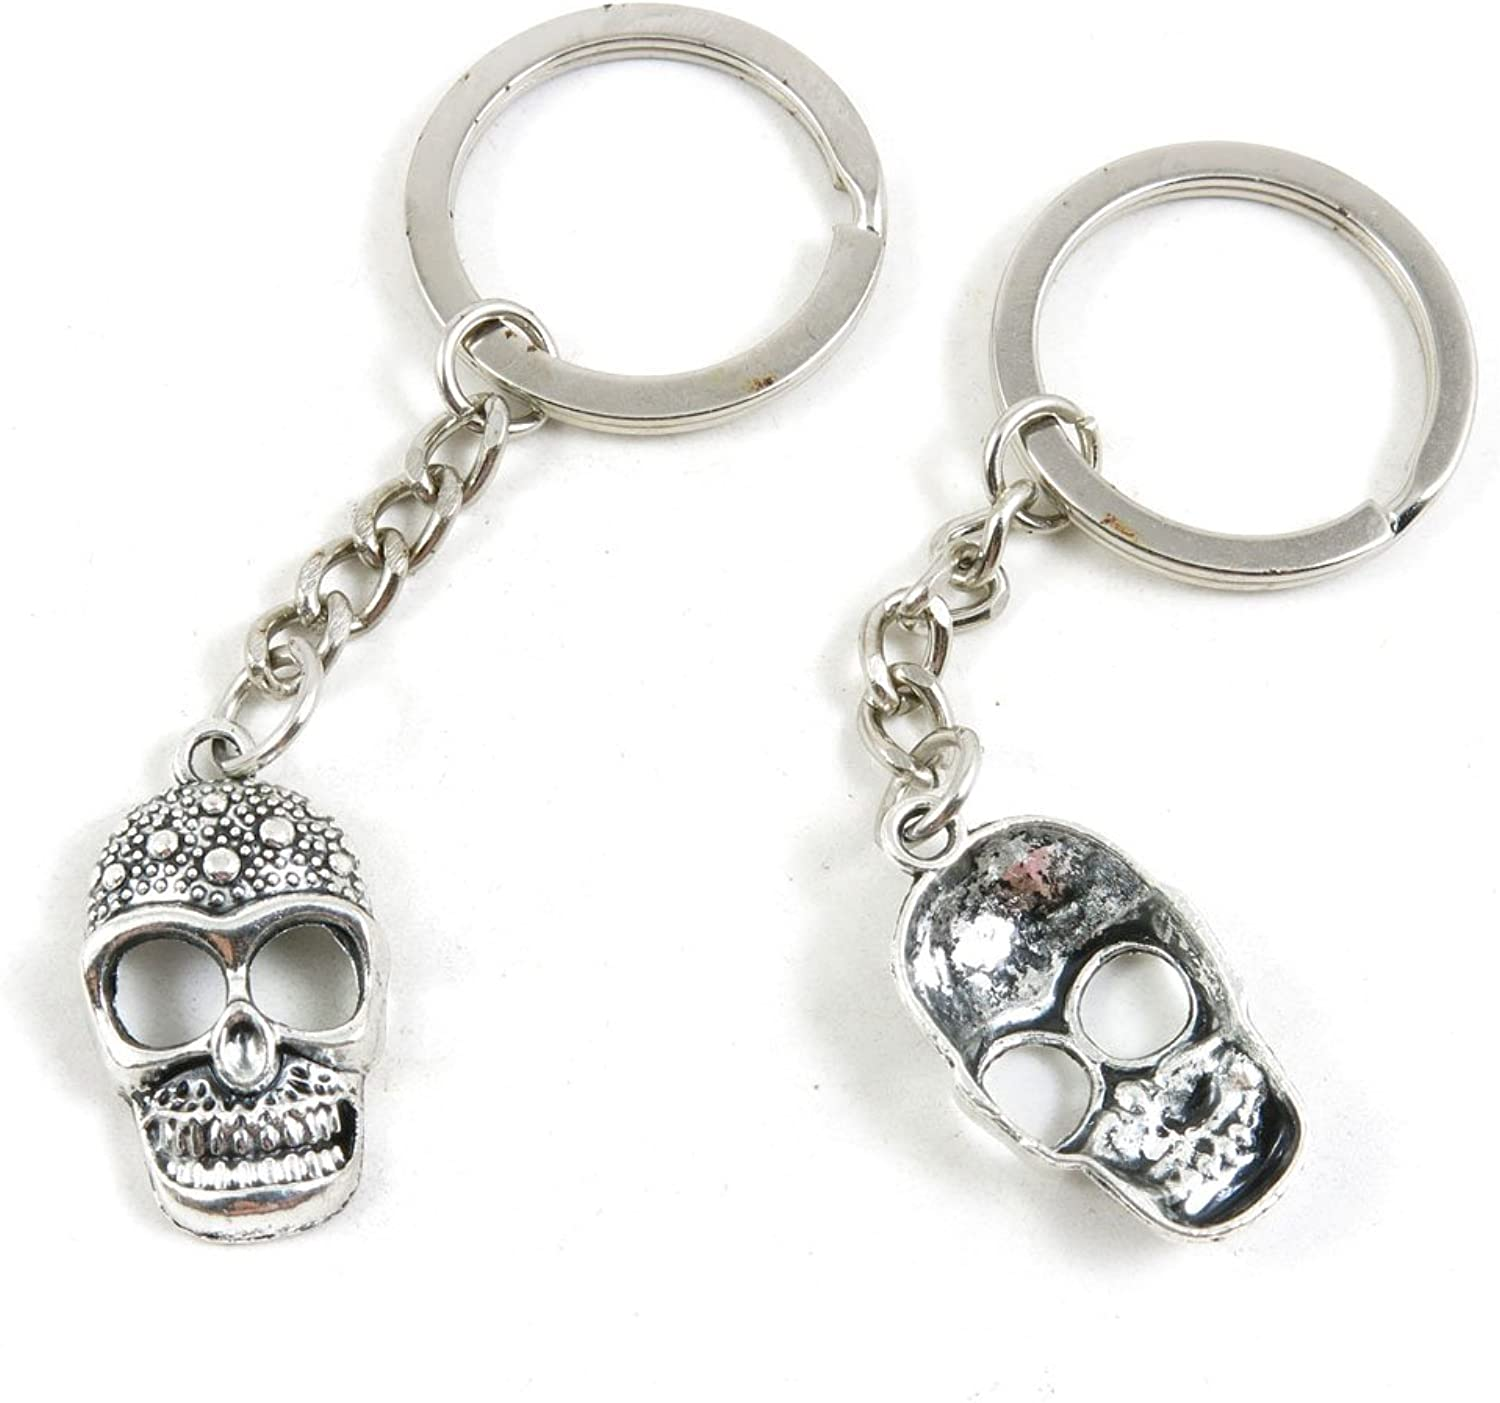 190 Pieces Fashion Jewelry Keyring Keychain Door Car Key Tag Ring Chain Supplier Supply Wholesale Bulk Lots H3YF6 Skull